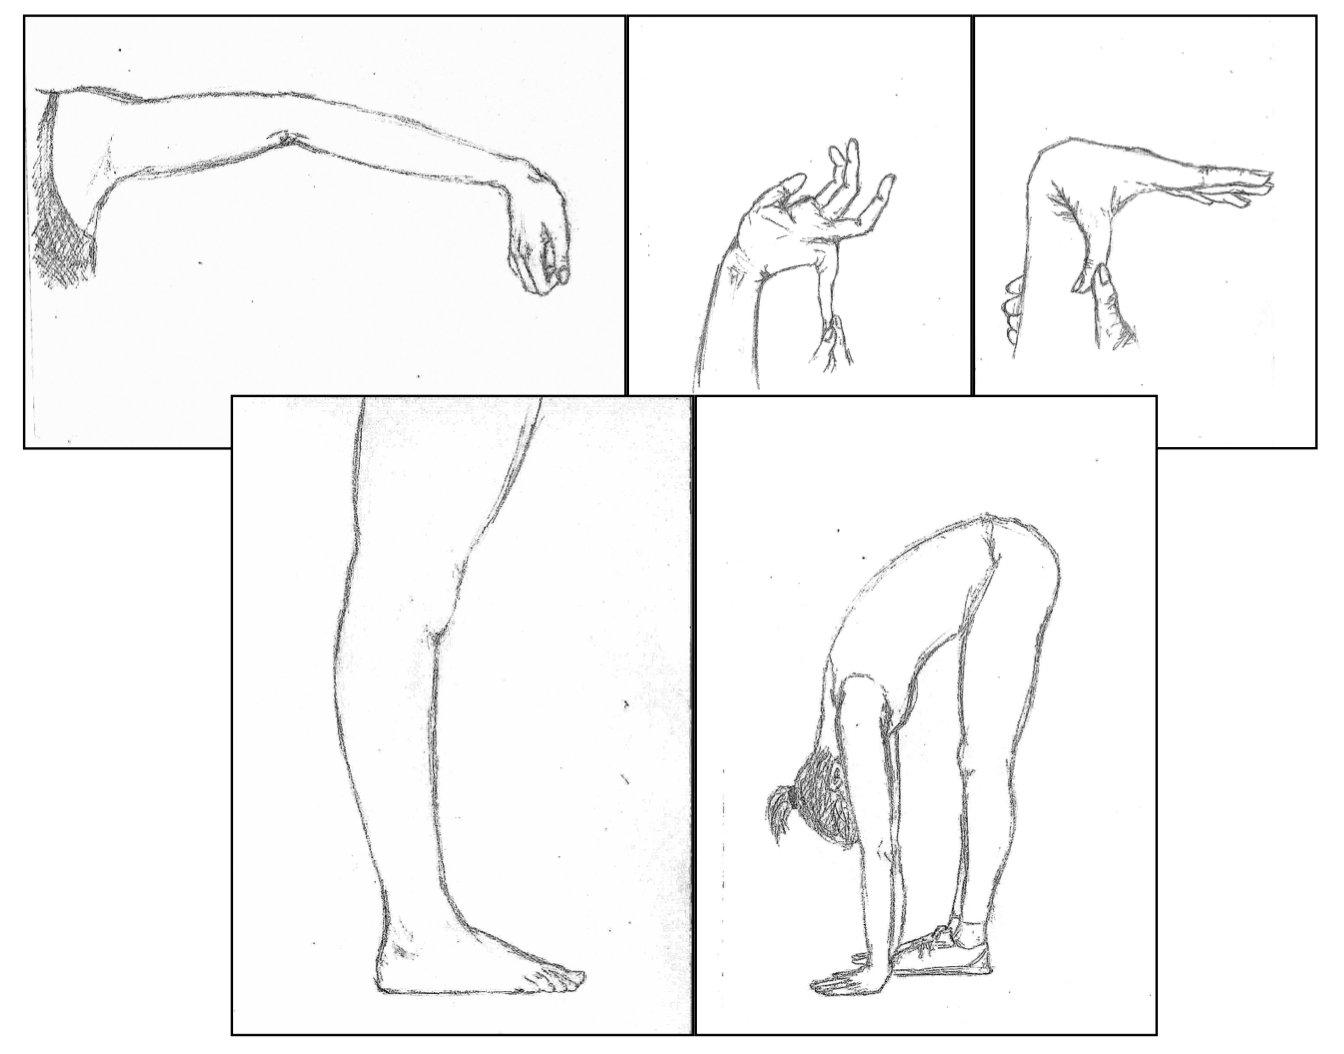 5 illustrations showing an elbow, a pinky finger, a thumb and a knee hyperextending and a person touching their hands flat to the floor.